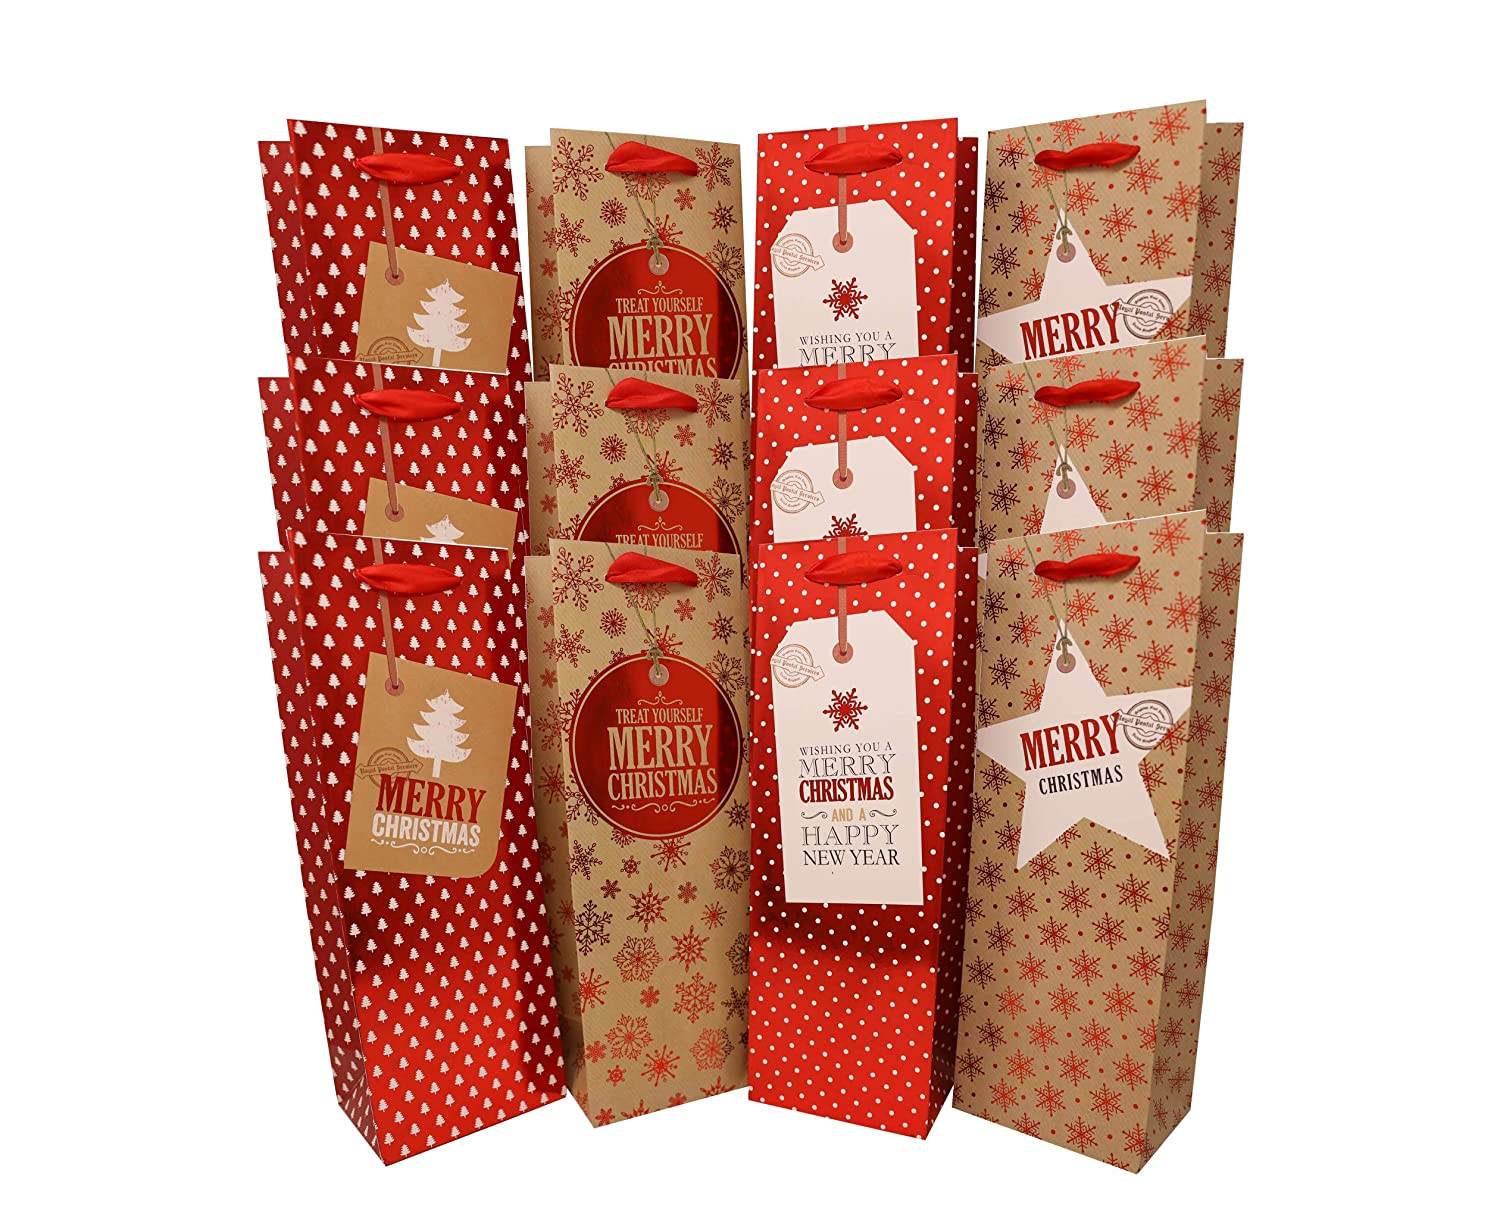 Wine Christmas Packaging.Holiday Wine Liquor Or Beer Gift Bags 12 Pack Bulk Variety Set Includes 4 Cute Red And Gold Designs